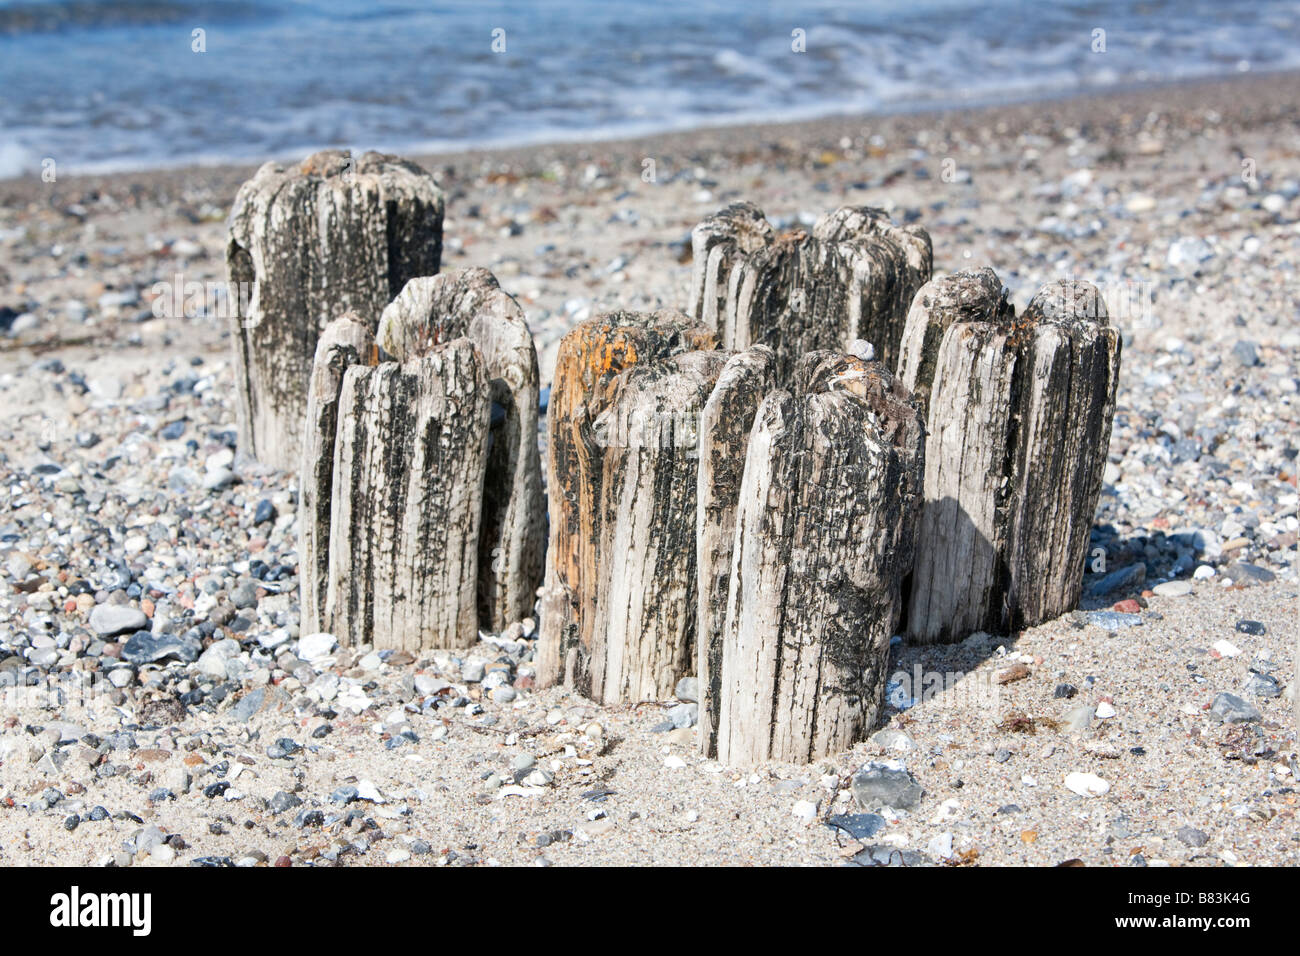 Old breakwaters on a beach near the harbour of Heiligenhafen, Germany. - Stock Image